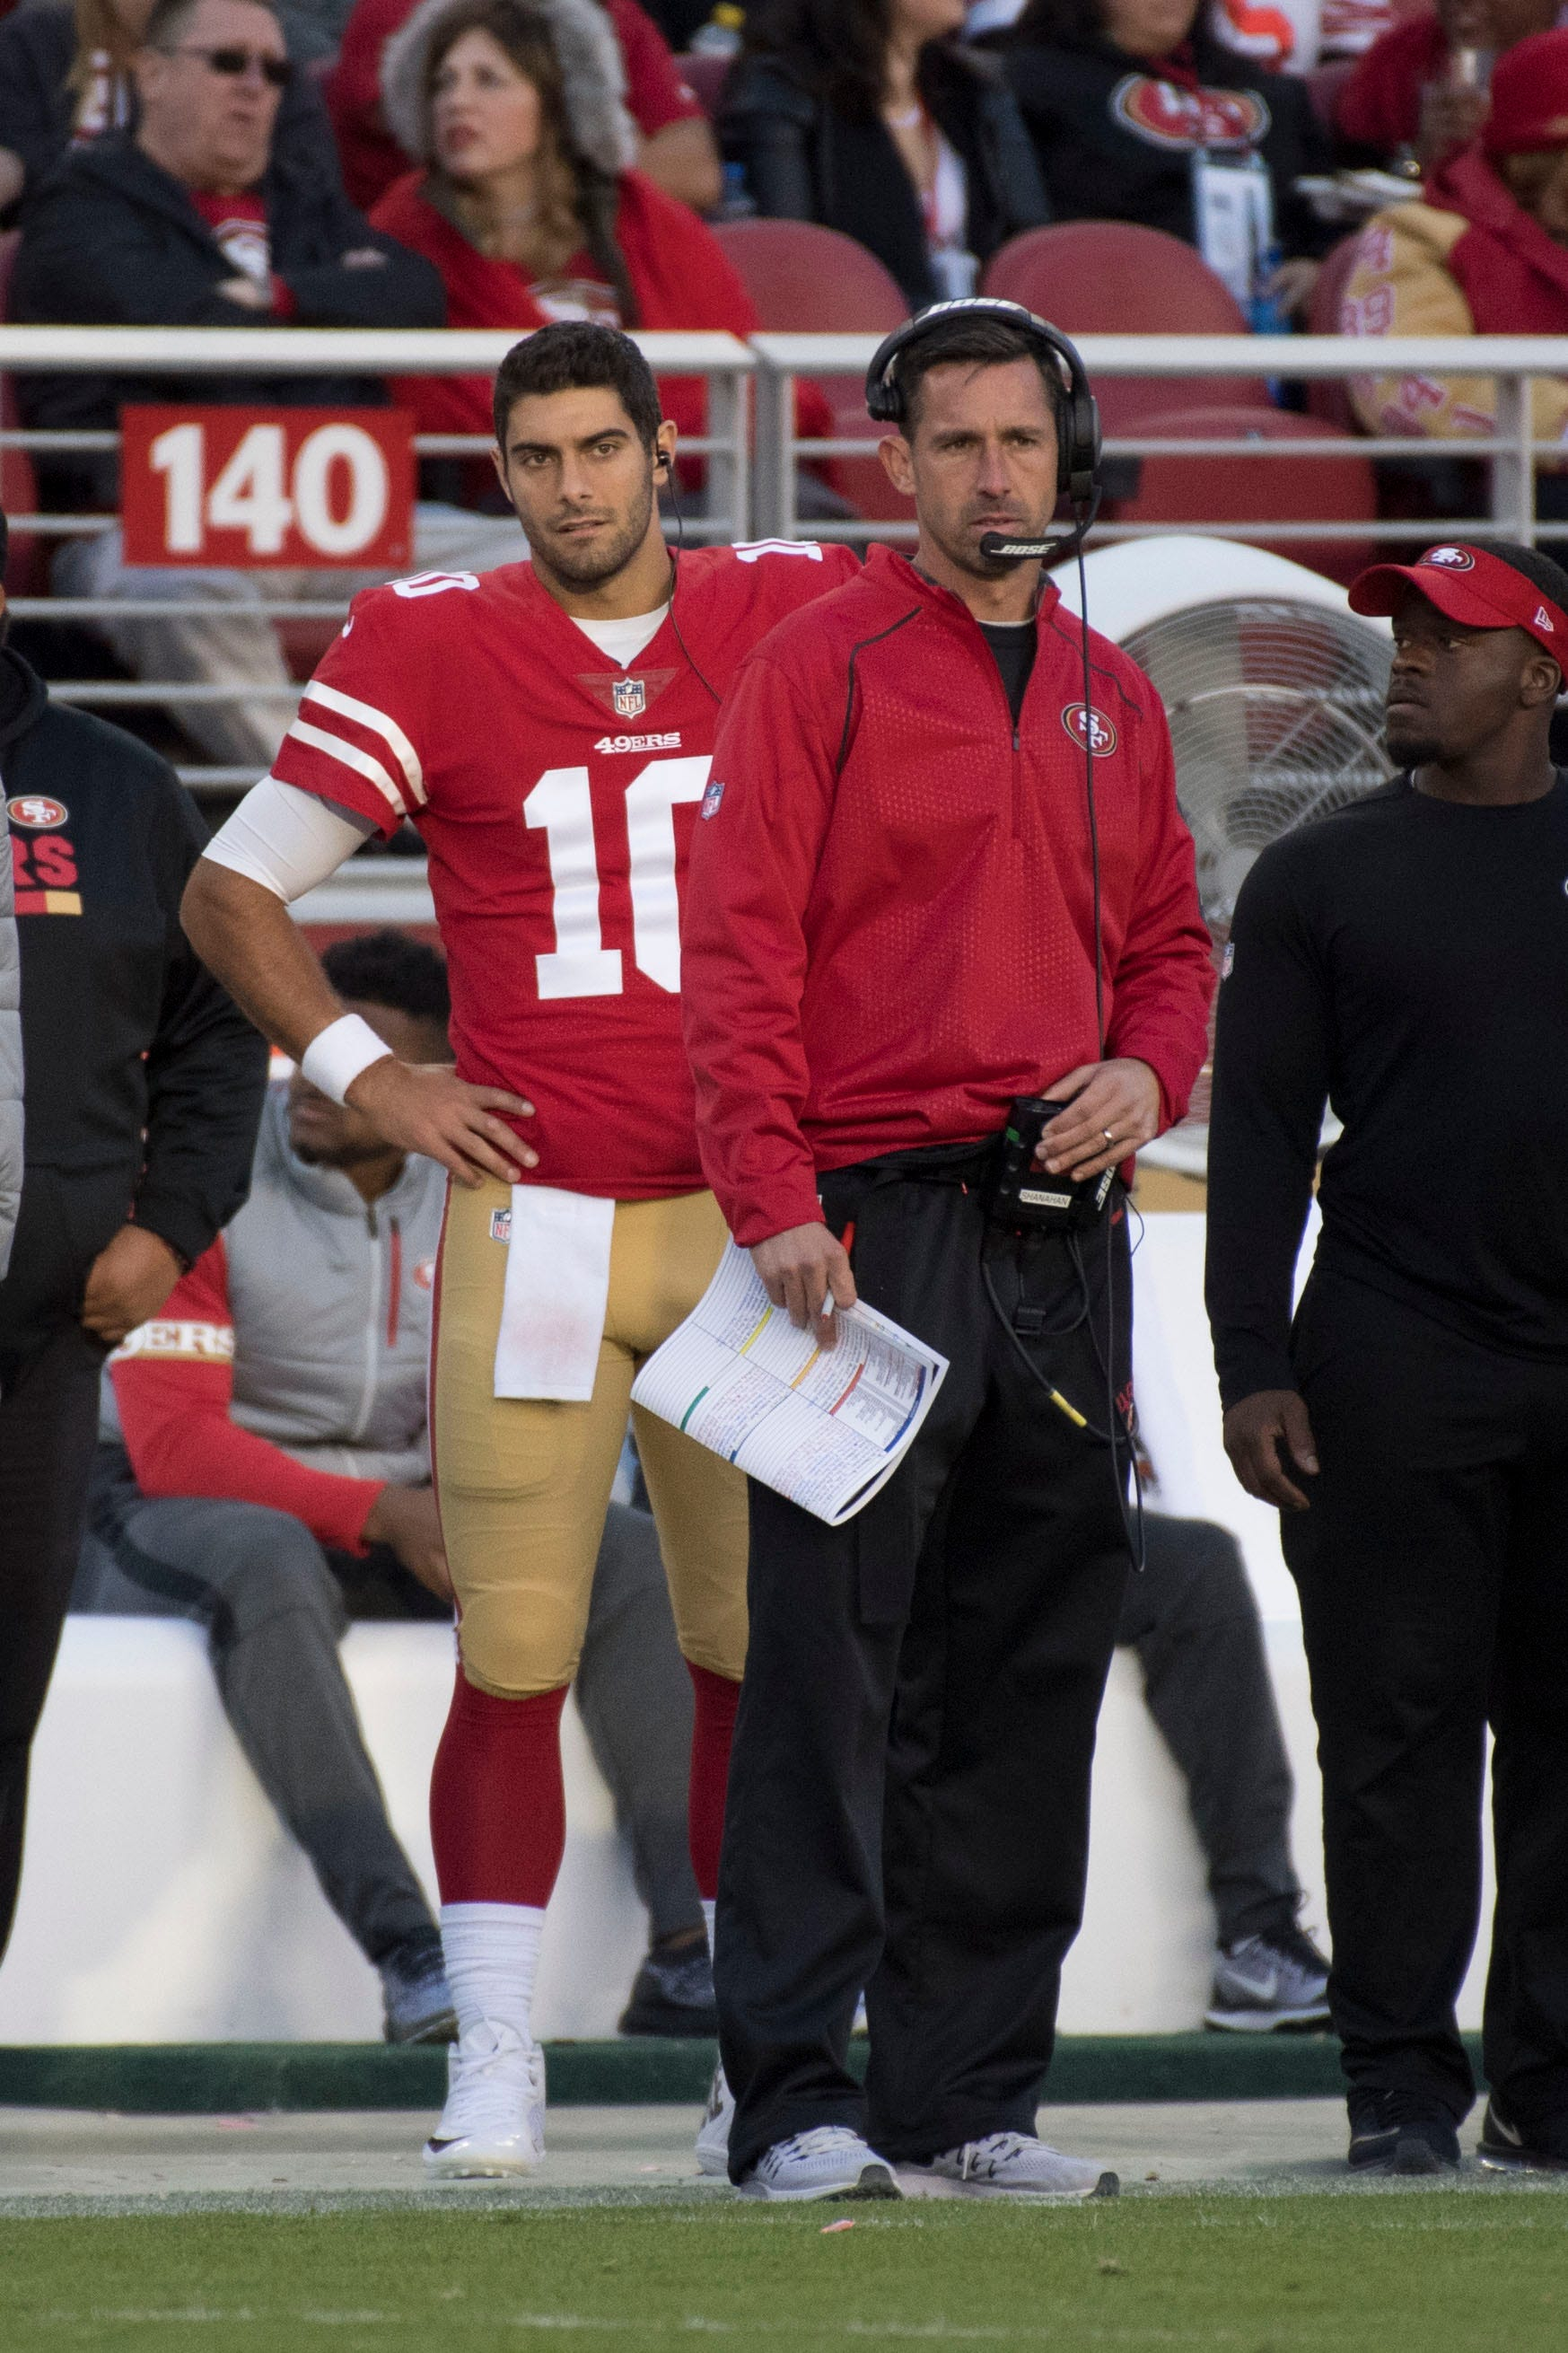 Why Jimmy Garoppolo will be the Niners starter this season